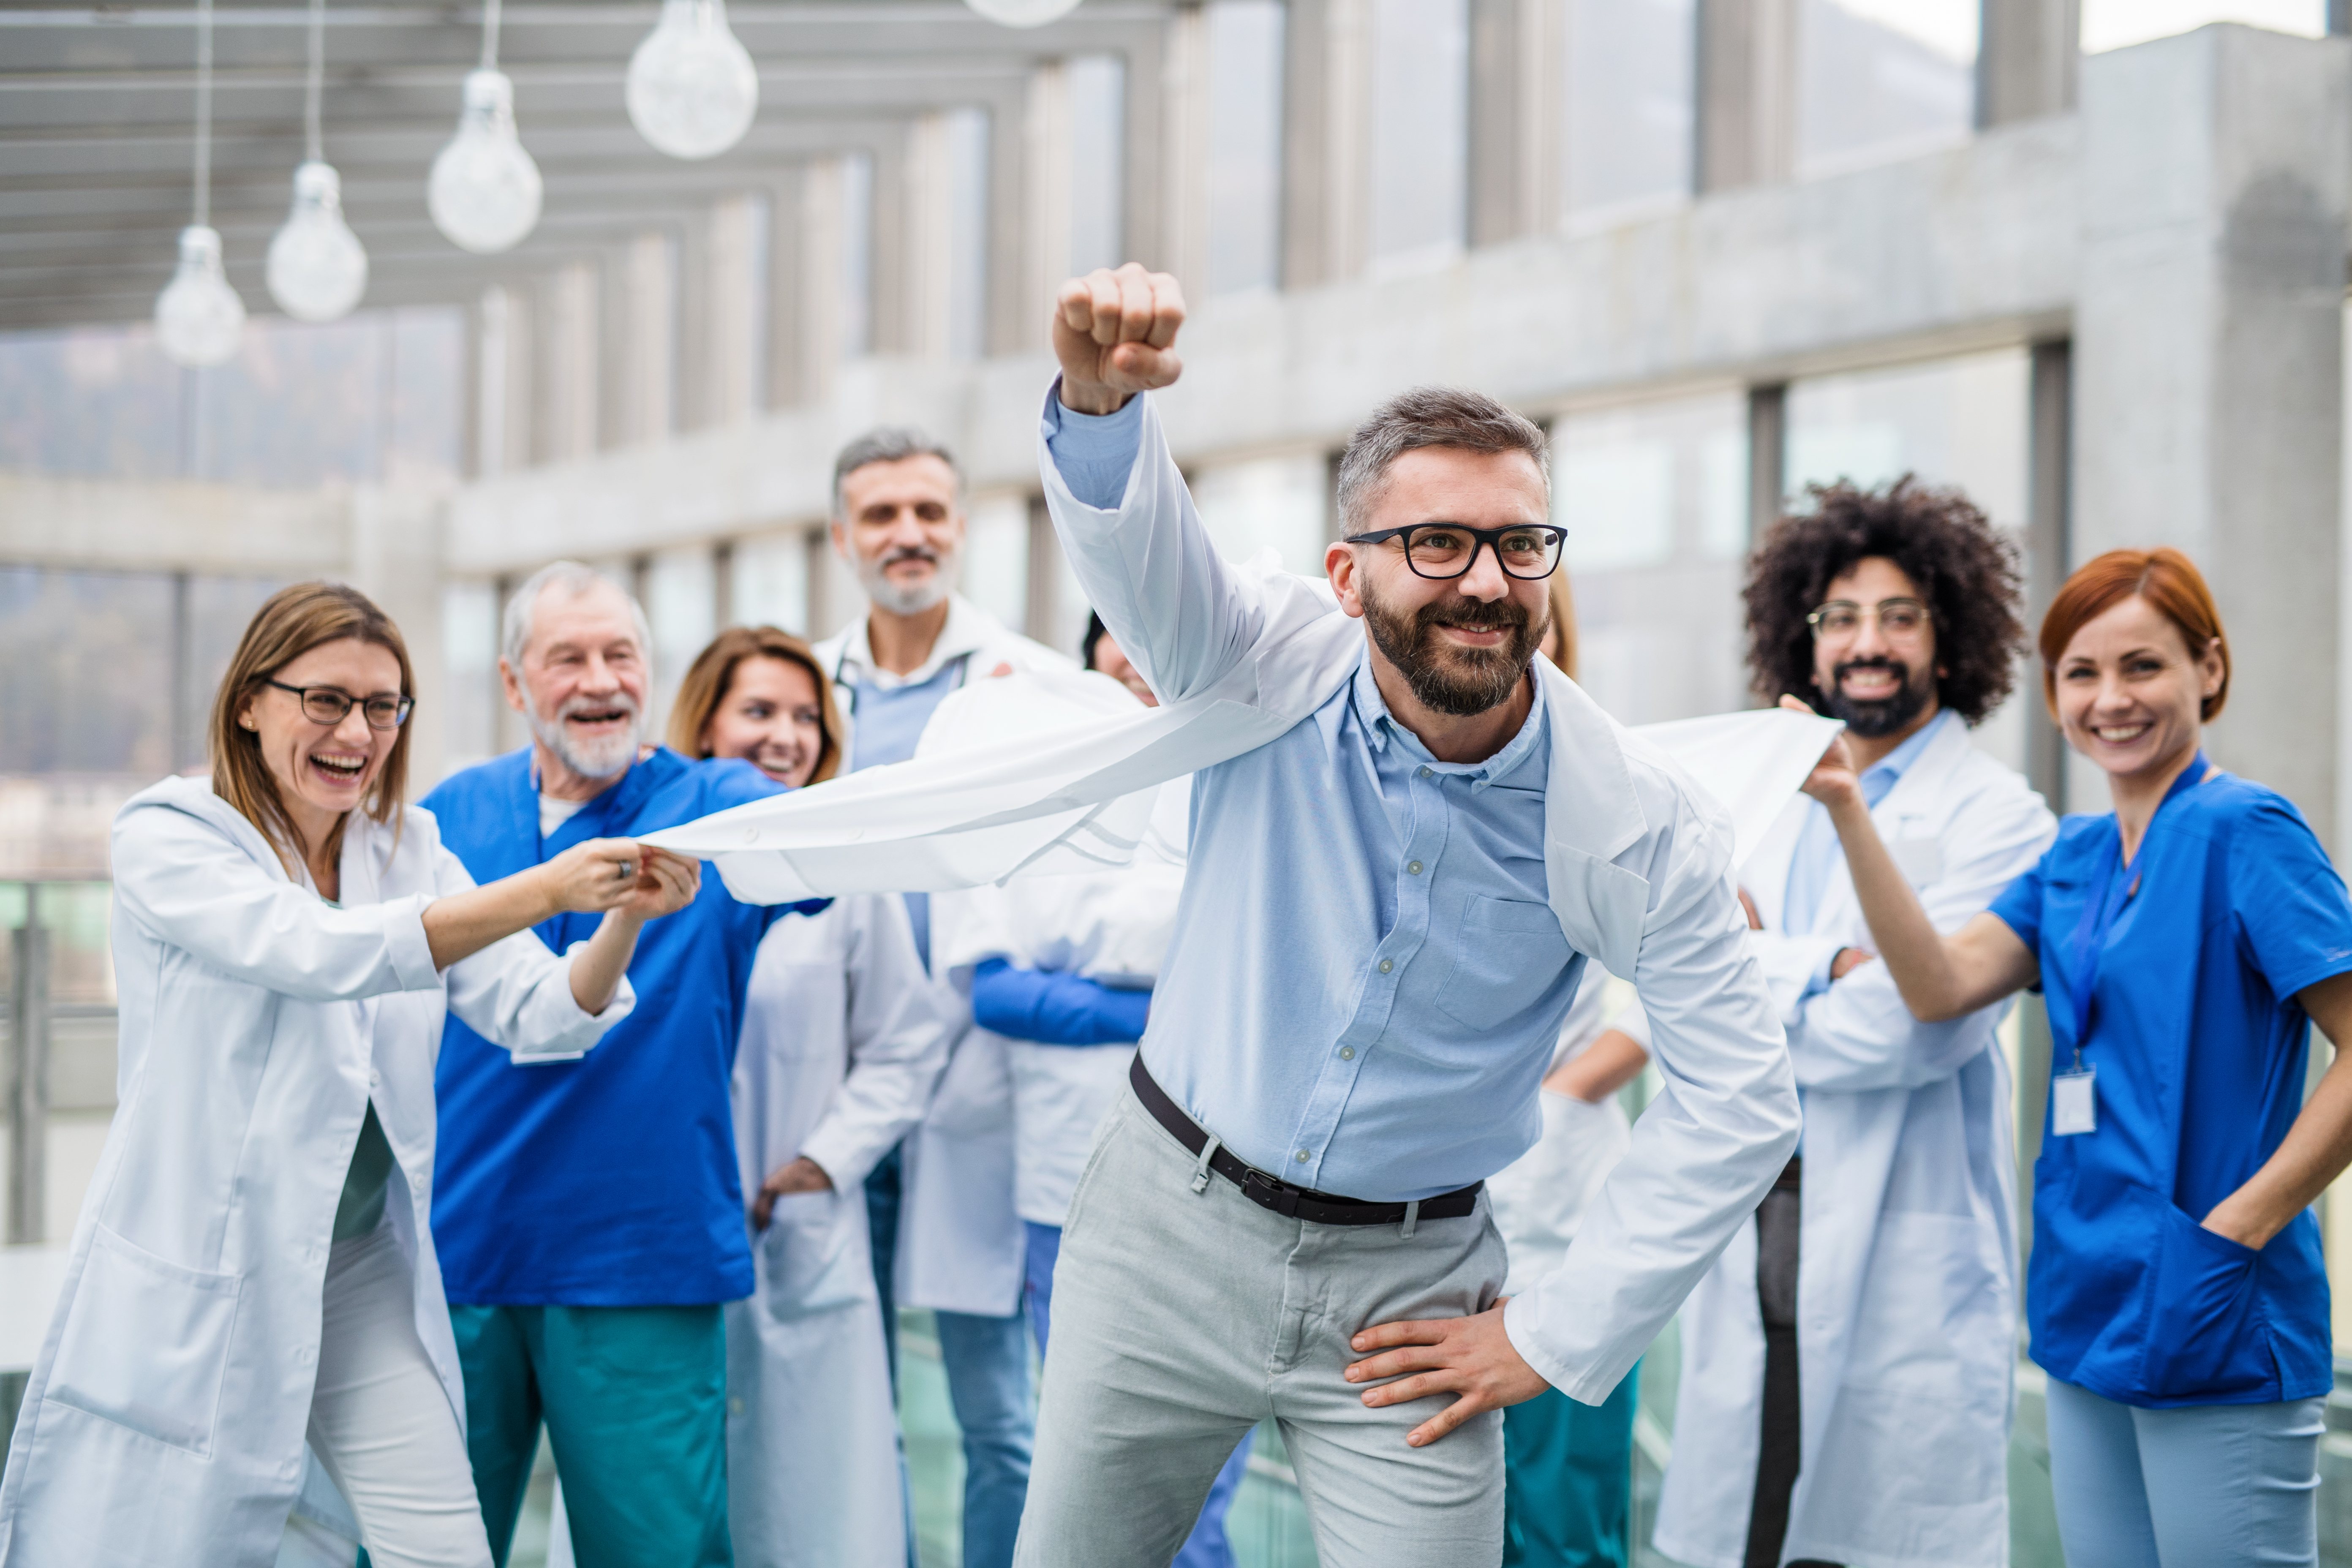 Group-of-doctors-standing-in-corridor-on-medical-conference,-having-fun.-1215473969_5568x3712